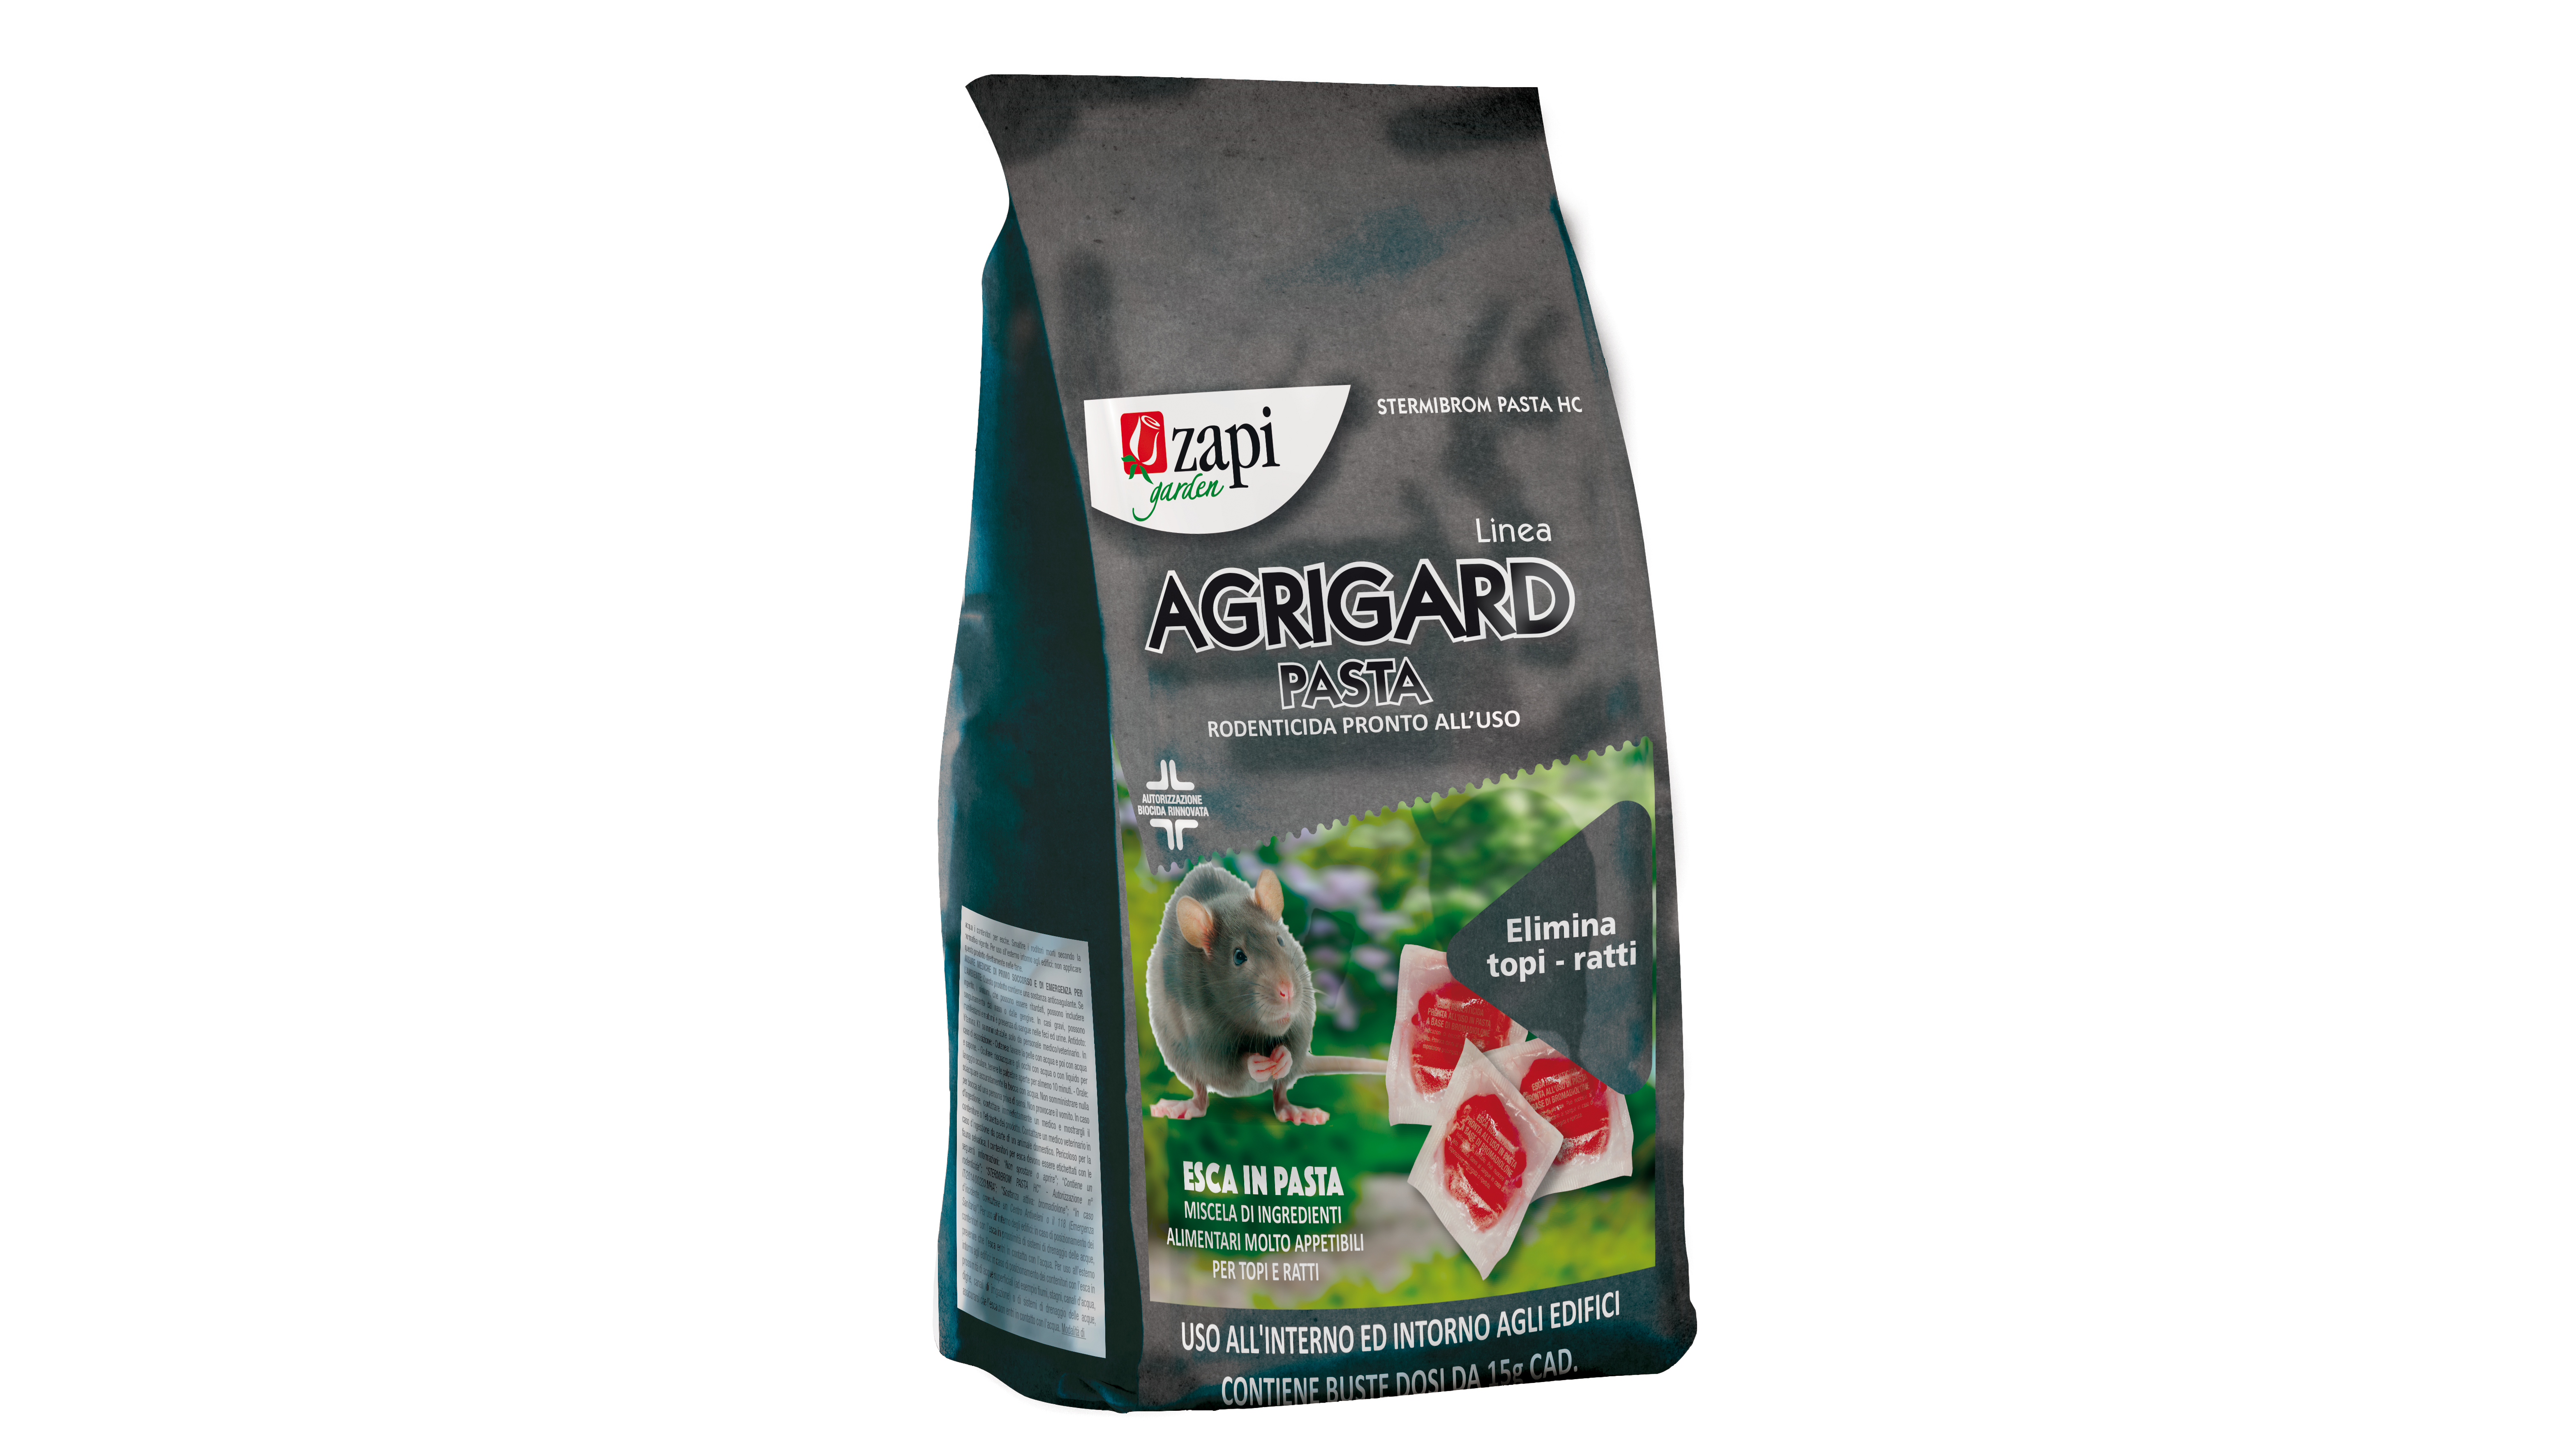 Agrigard